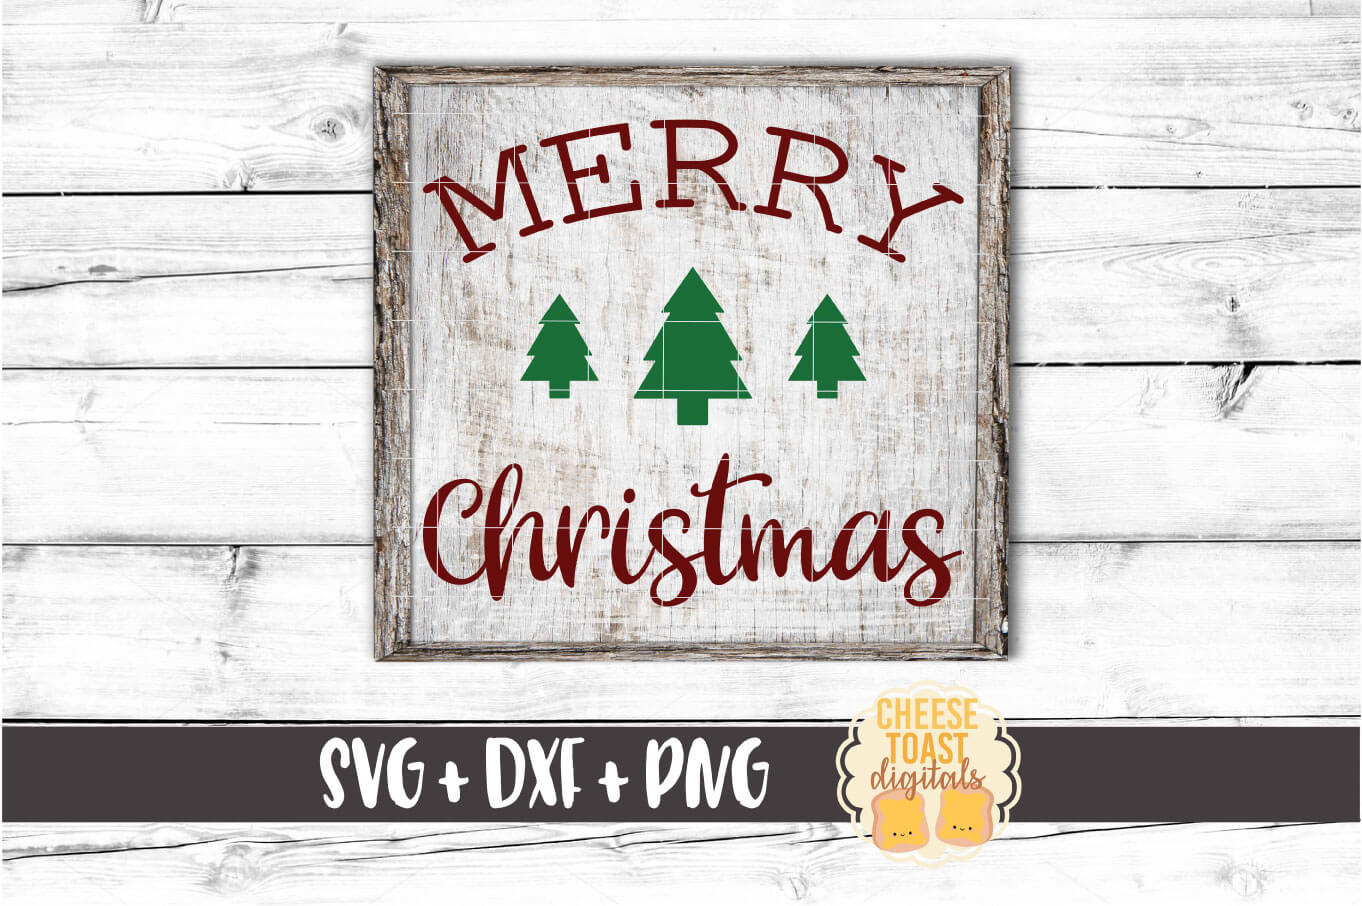 Merry Christmas - Christmas Tree Sign SVG PNG DXF Cut Files example image 1